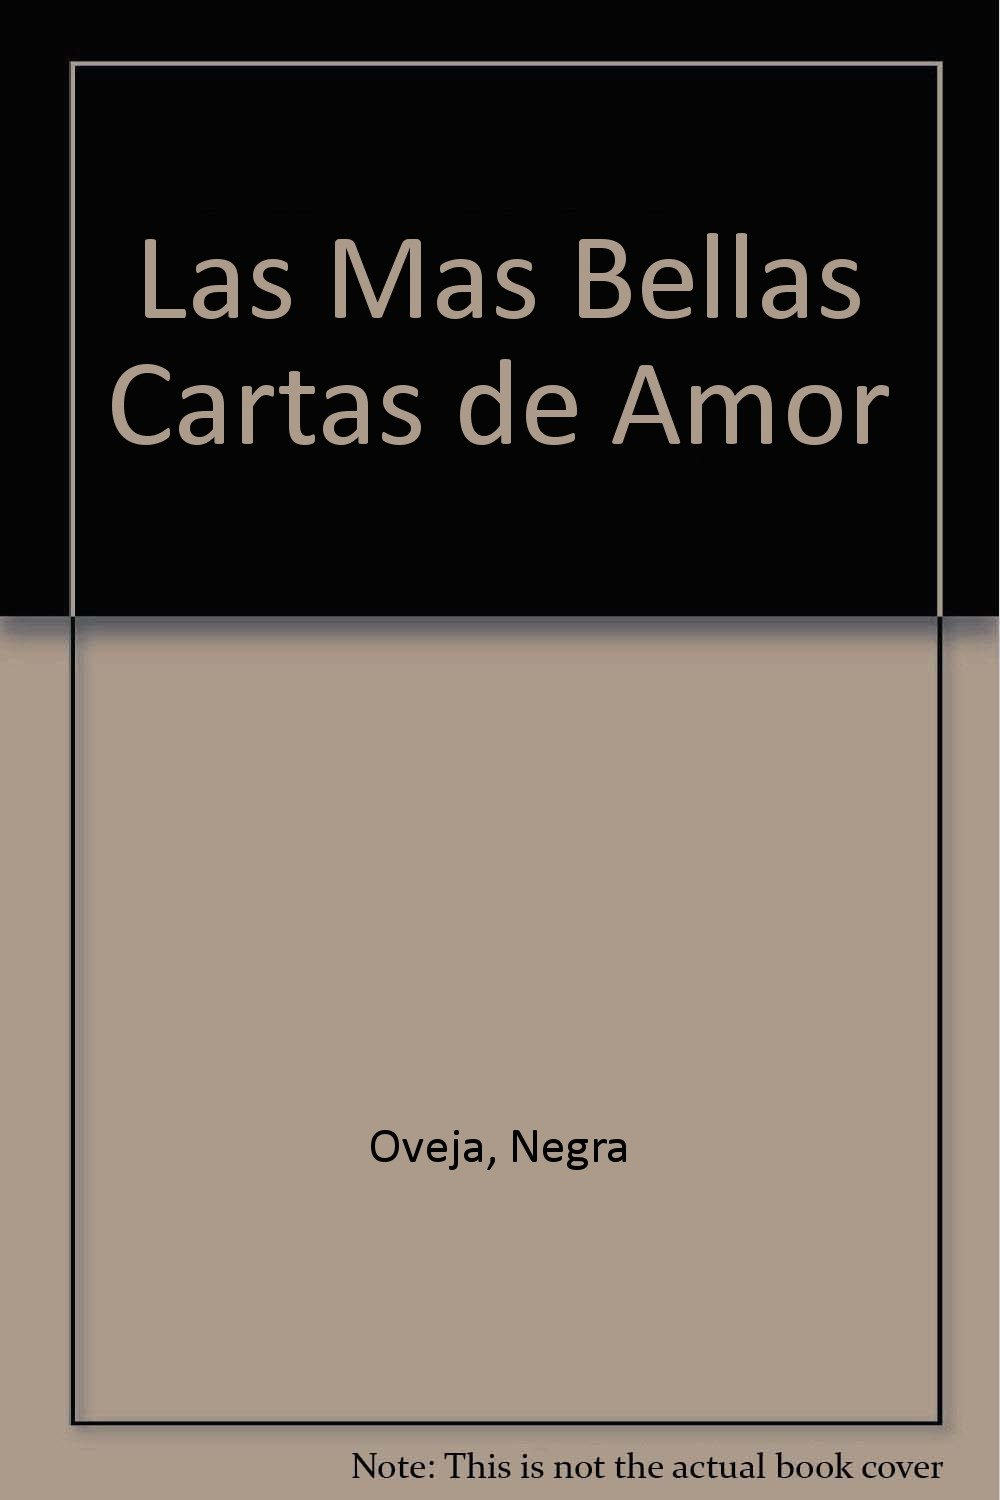 Las Mas Bellas Cartas de Amor (Spanish Edition) ebook